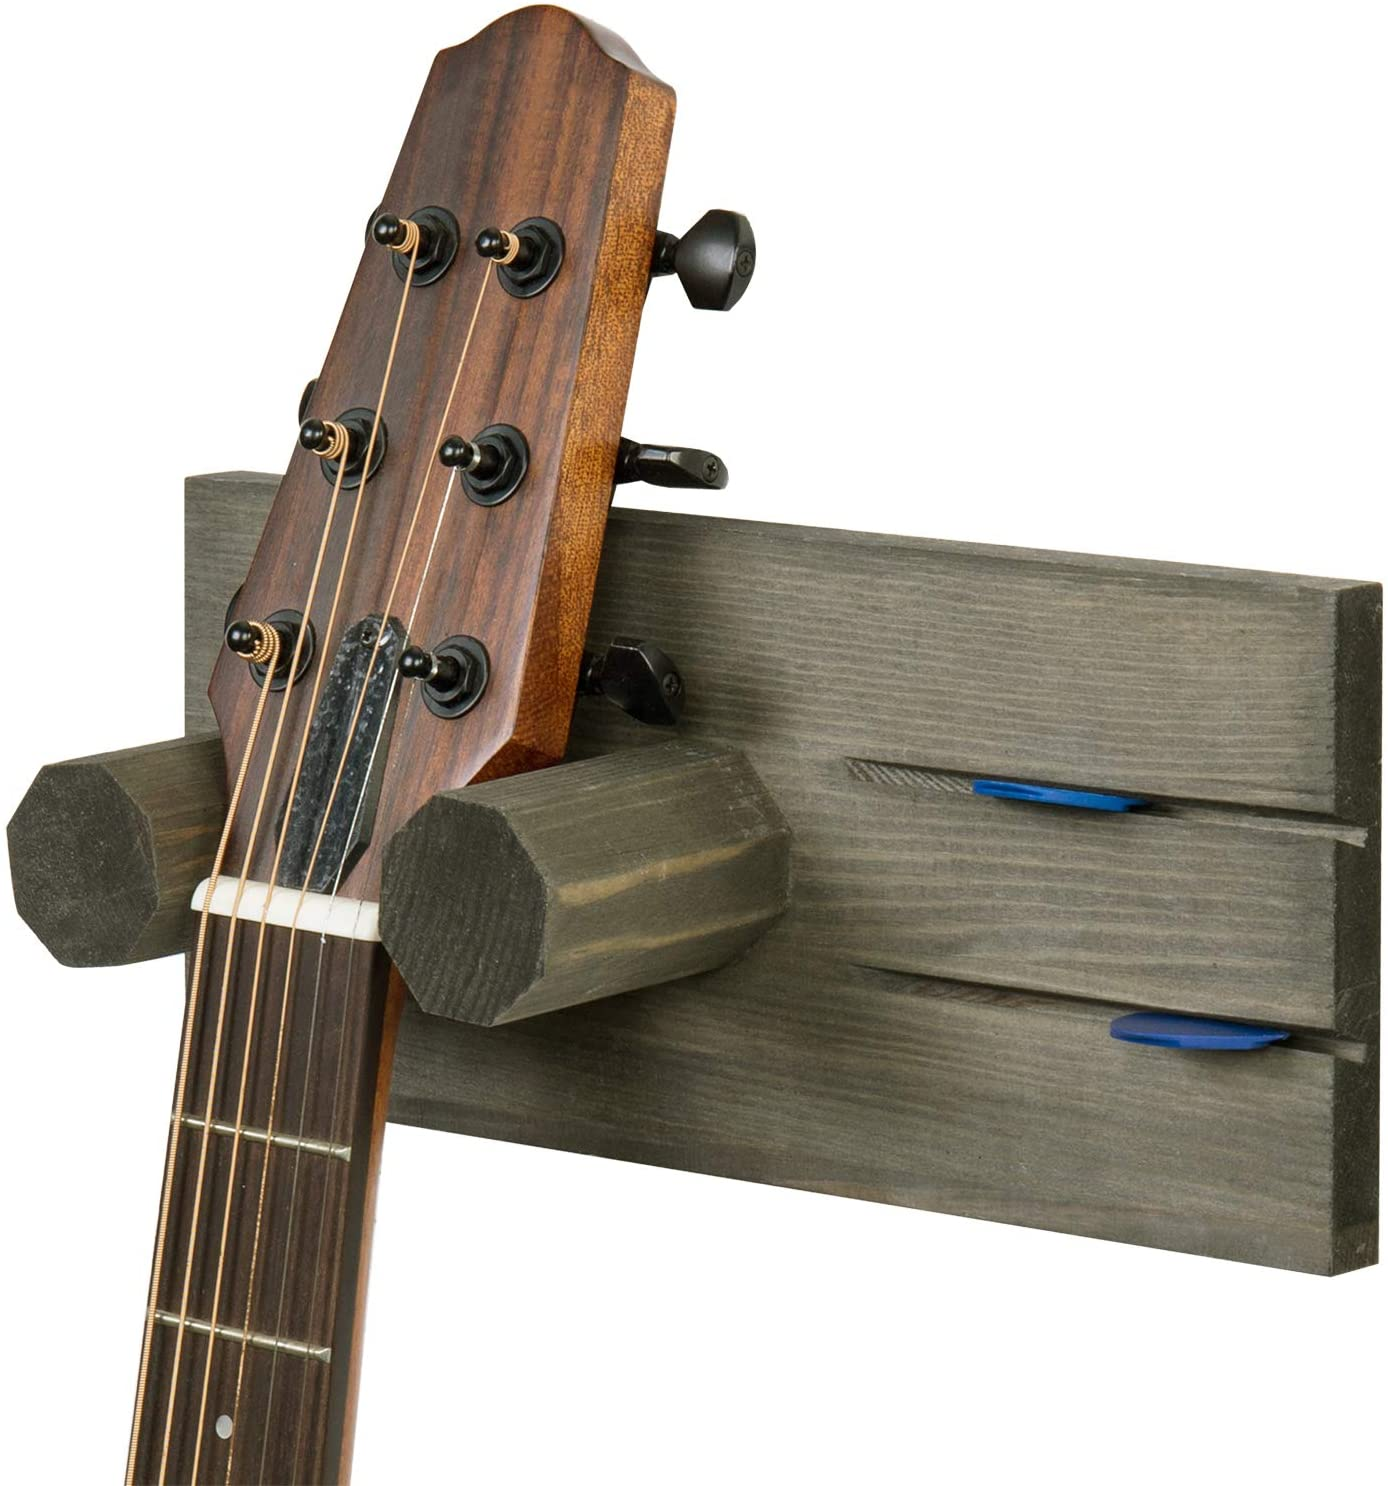 MyGift Vintage Gray Solid Wood Wall Mounted Guitar Hanging Storage & Display Rack with Pick Holders